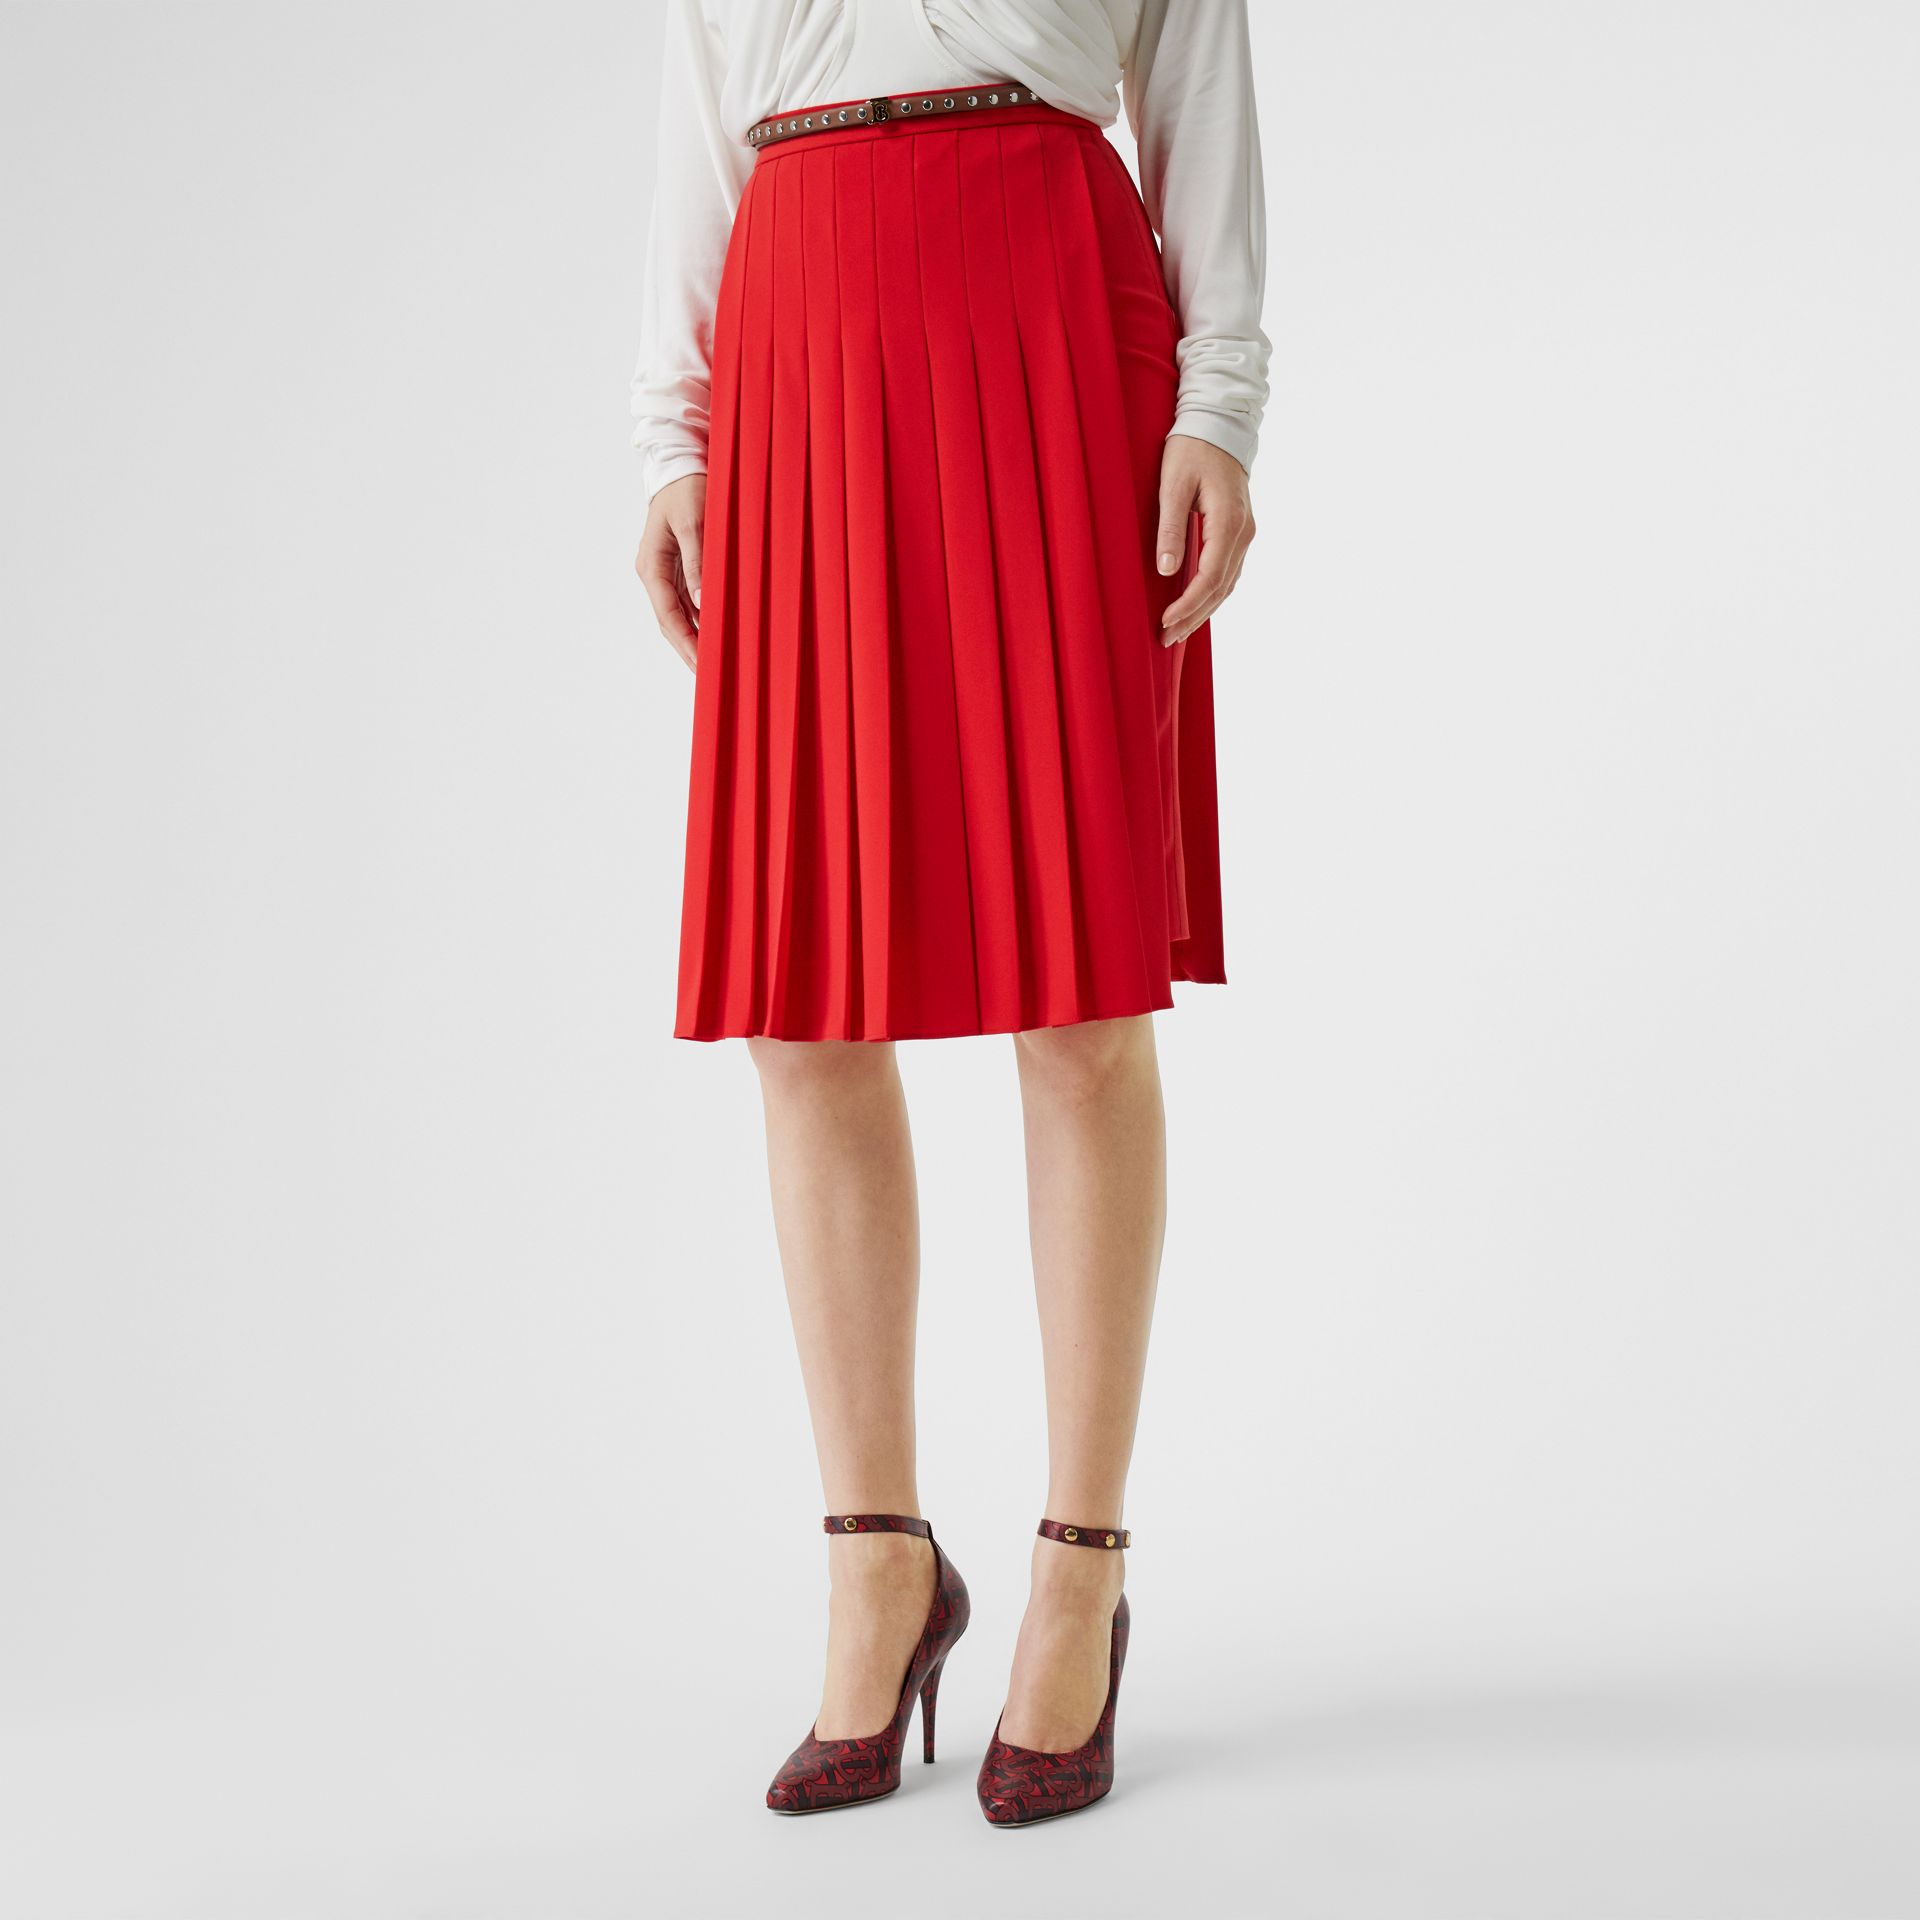 Stretch Cady Pleated Skirt in Bright Red - Women | Burberry - gallery image 4